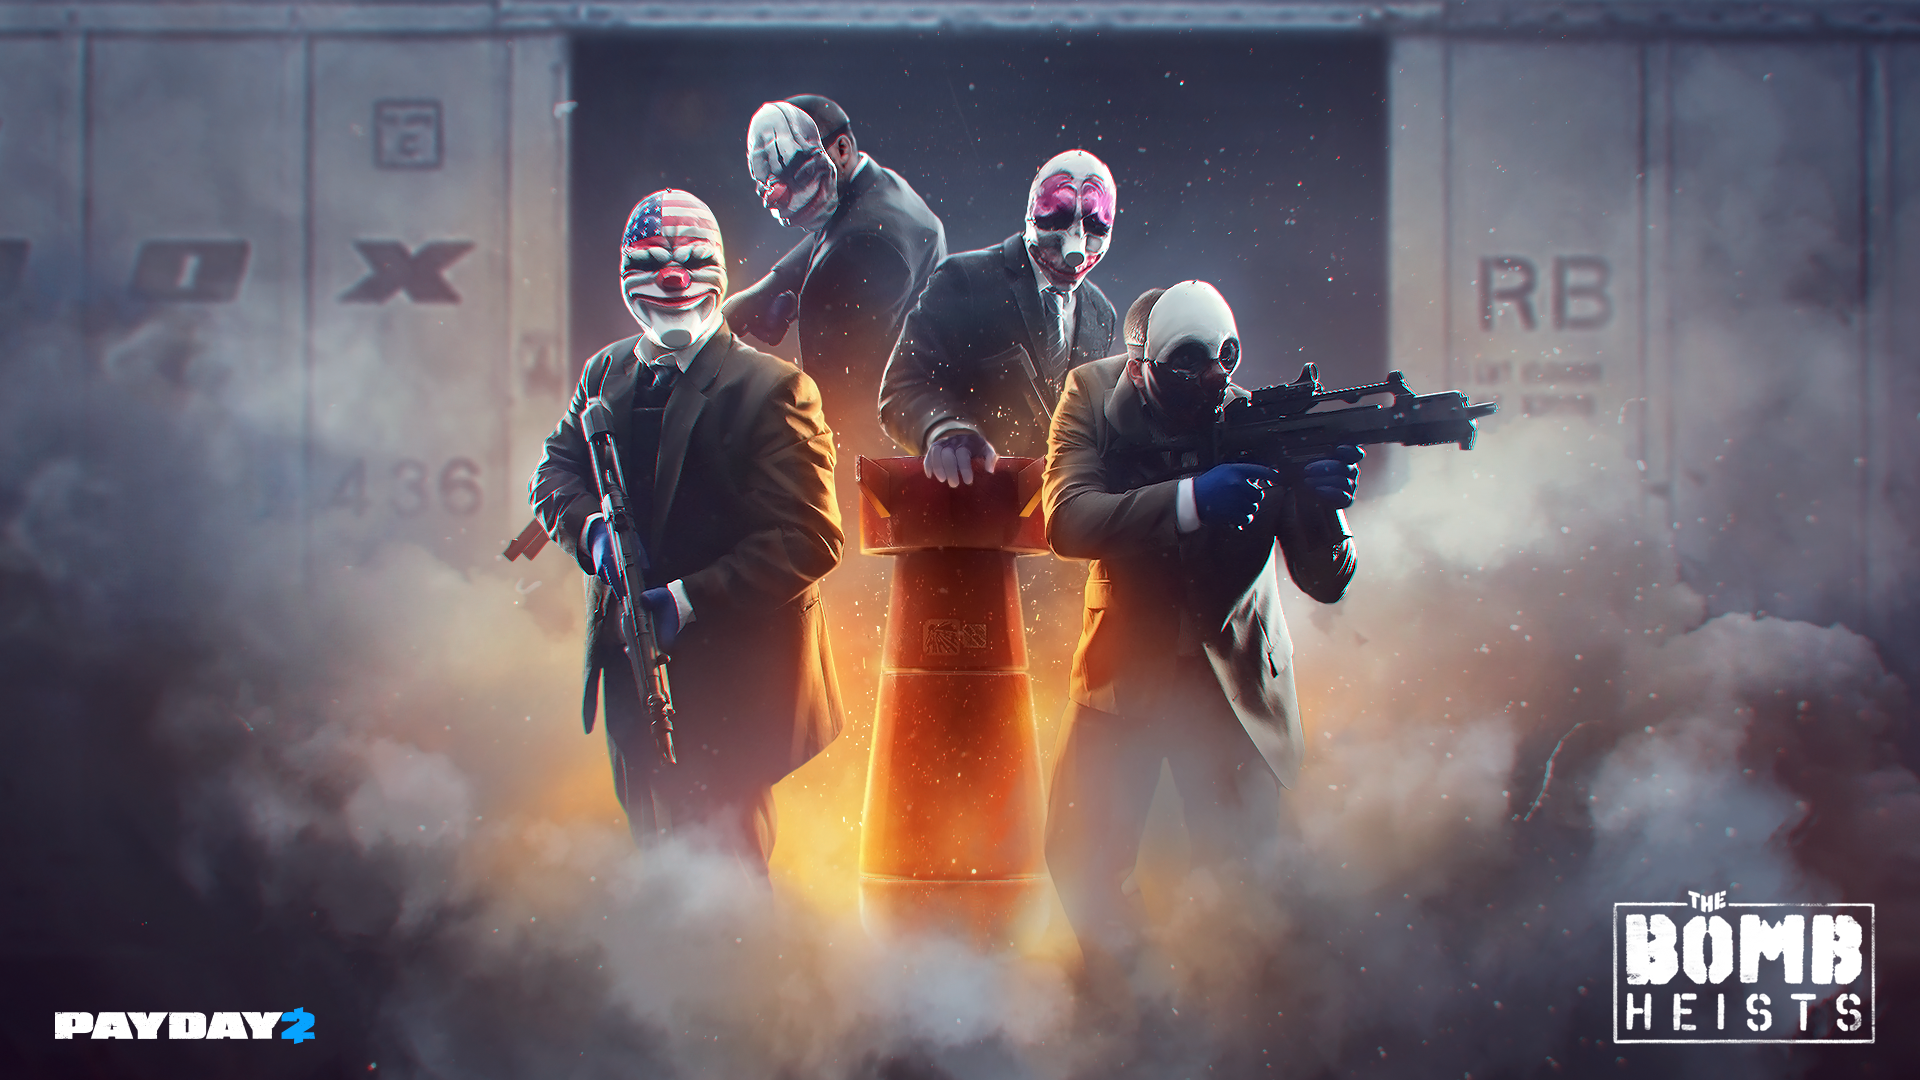 Payday The Wallpaper